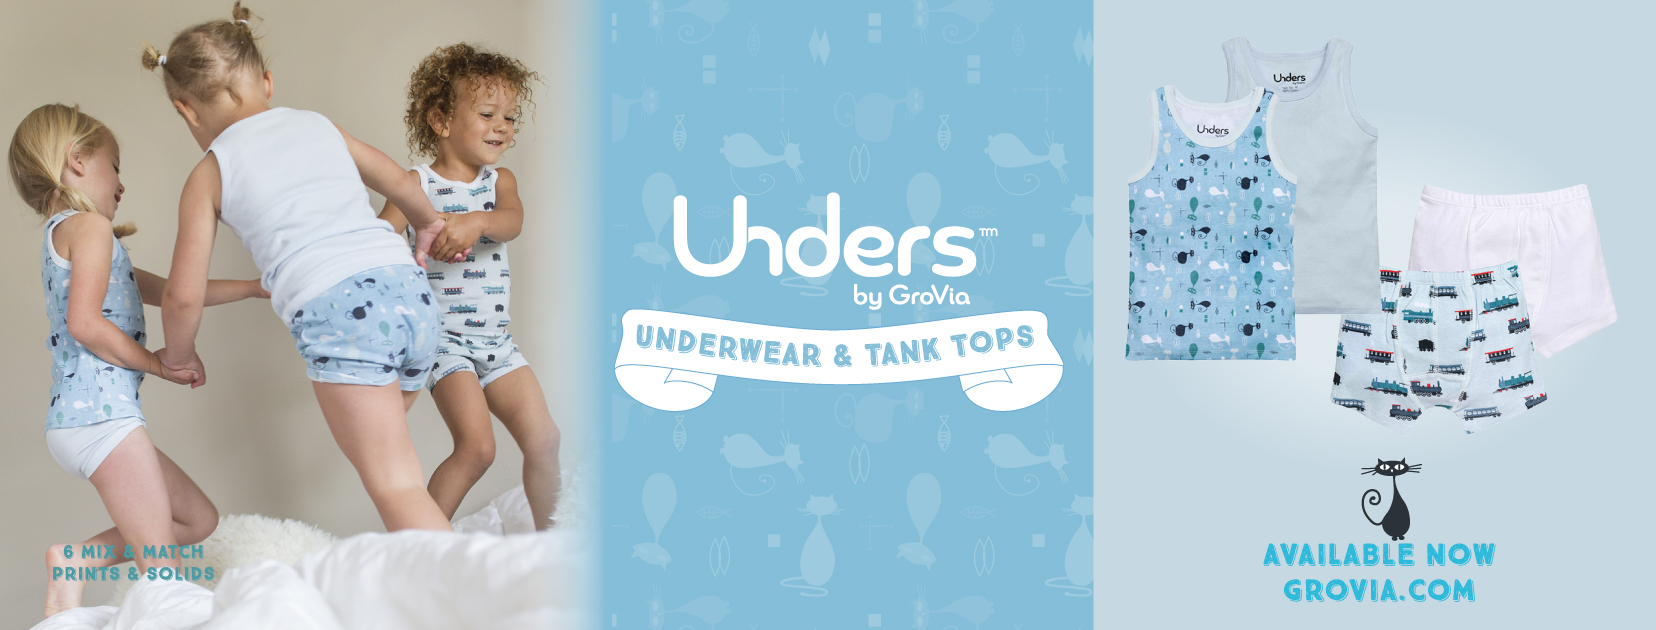 grovia_unders_ads_FB_Banner03.jpg